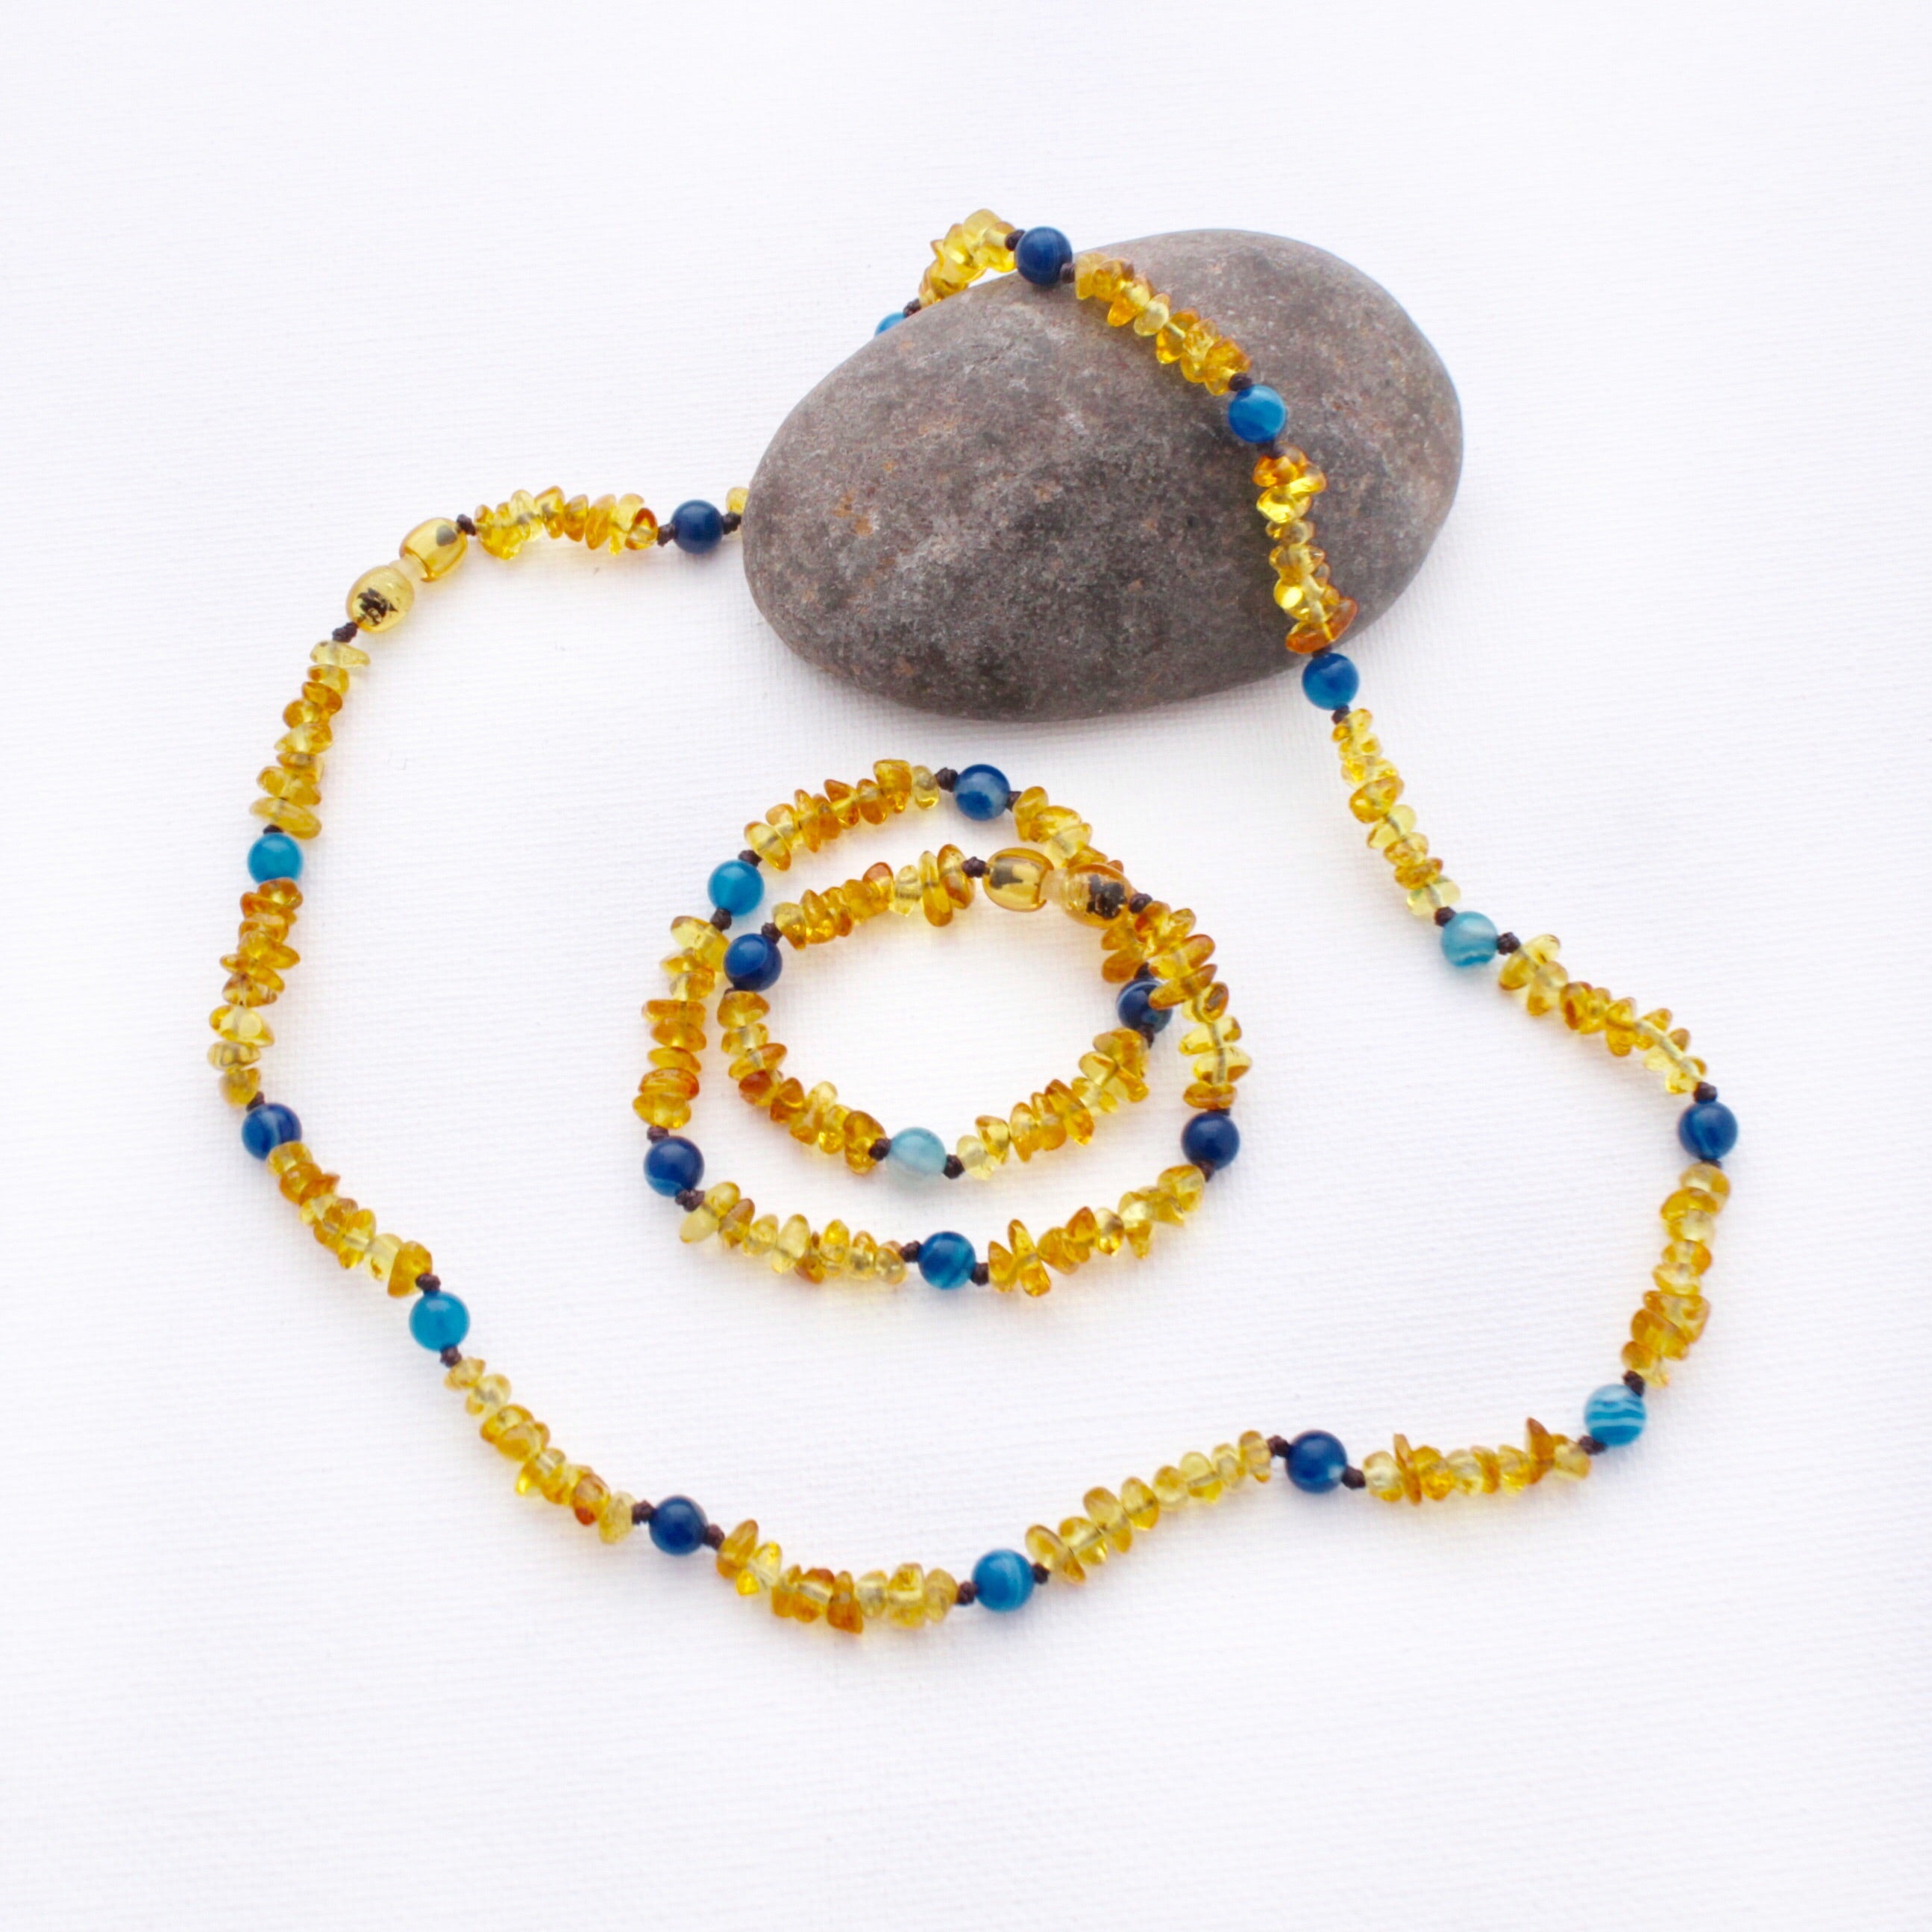 Mini and Me Amber Necklace Set | Honey Amber with Blue Striped Agate